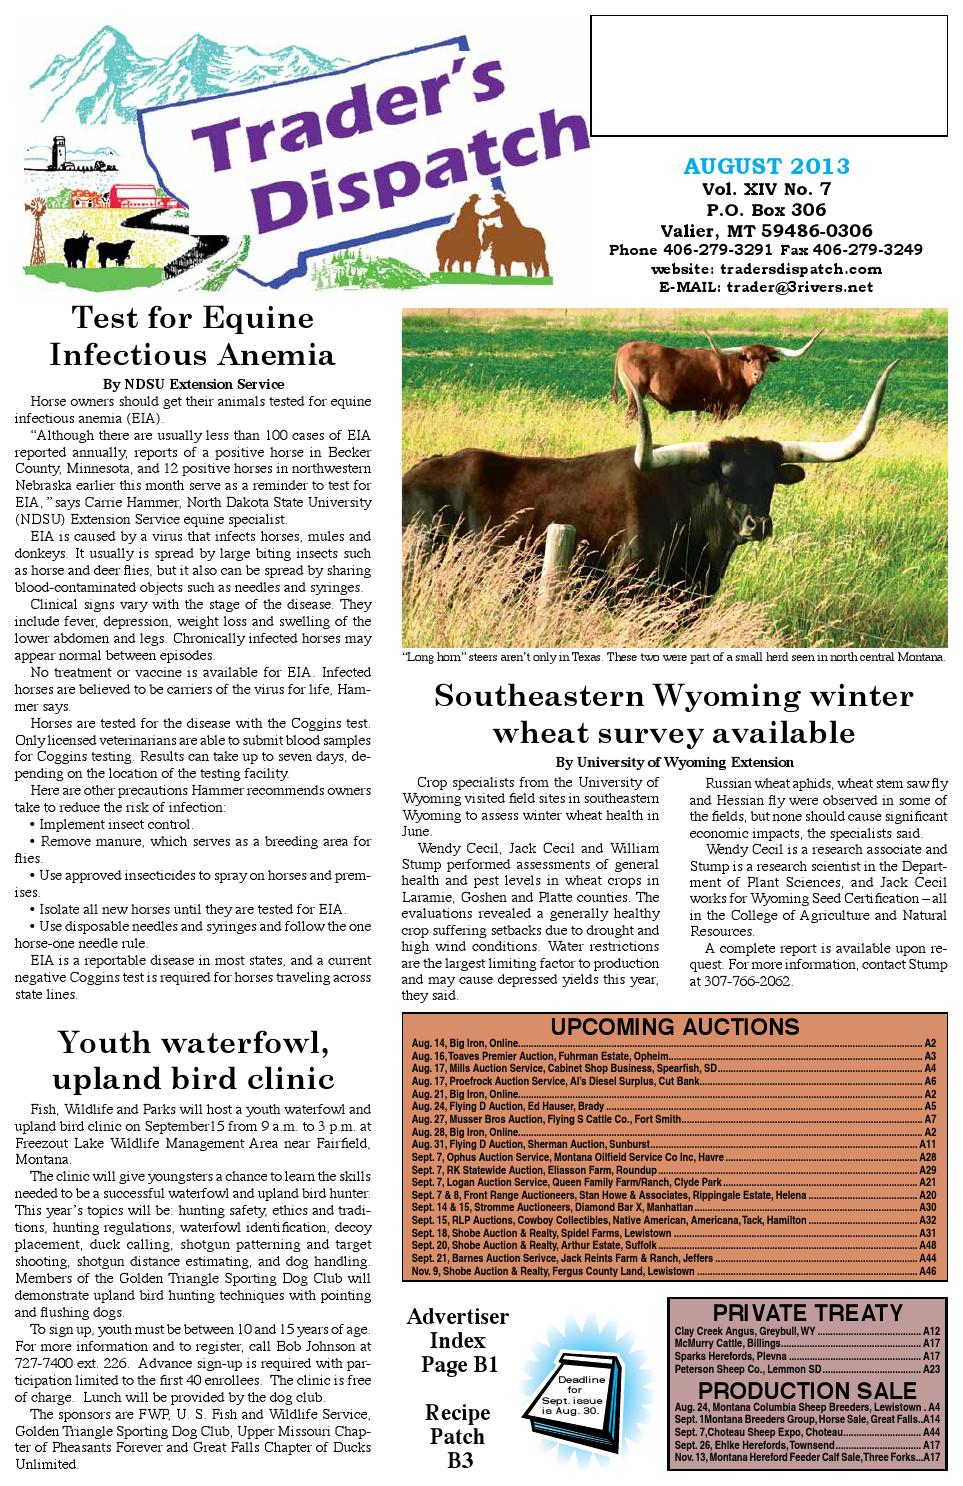 August 2013 by The Trader\'s Dispatch - issuu